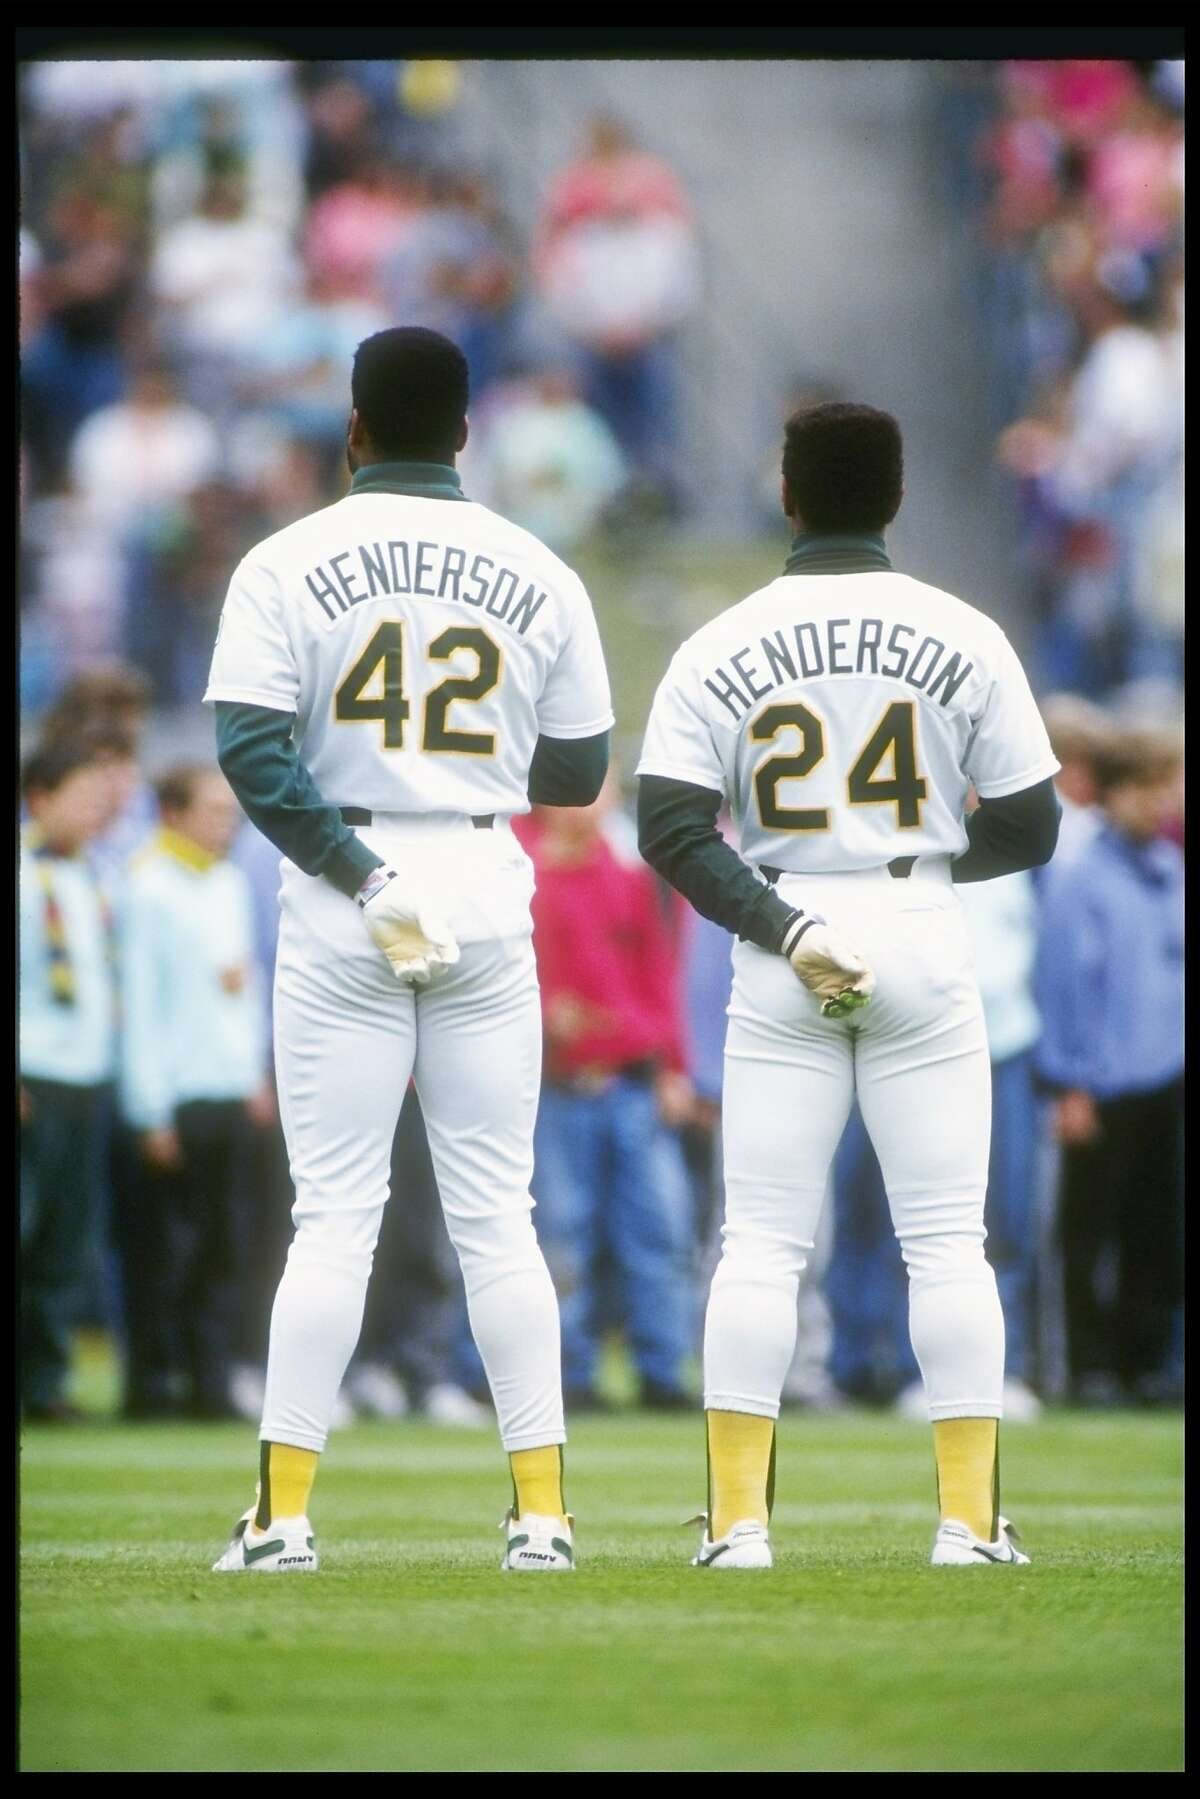 1991: Outfielders Dave Henderson (left) and Rickey Henderson of the Oakland Athletics stand with backs to camera.